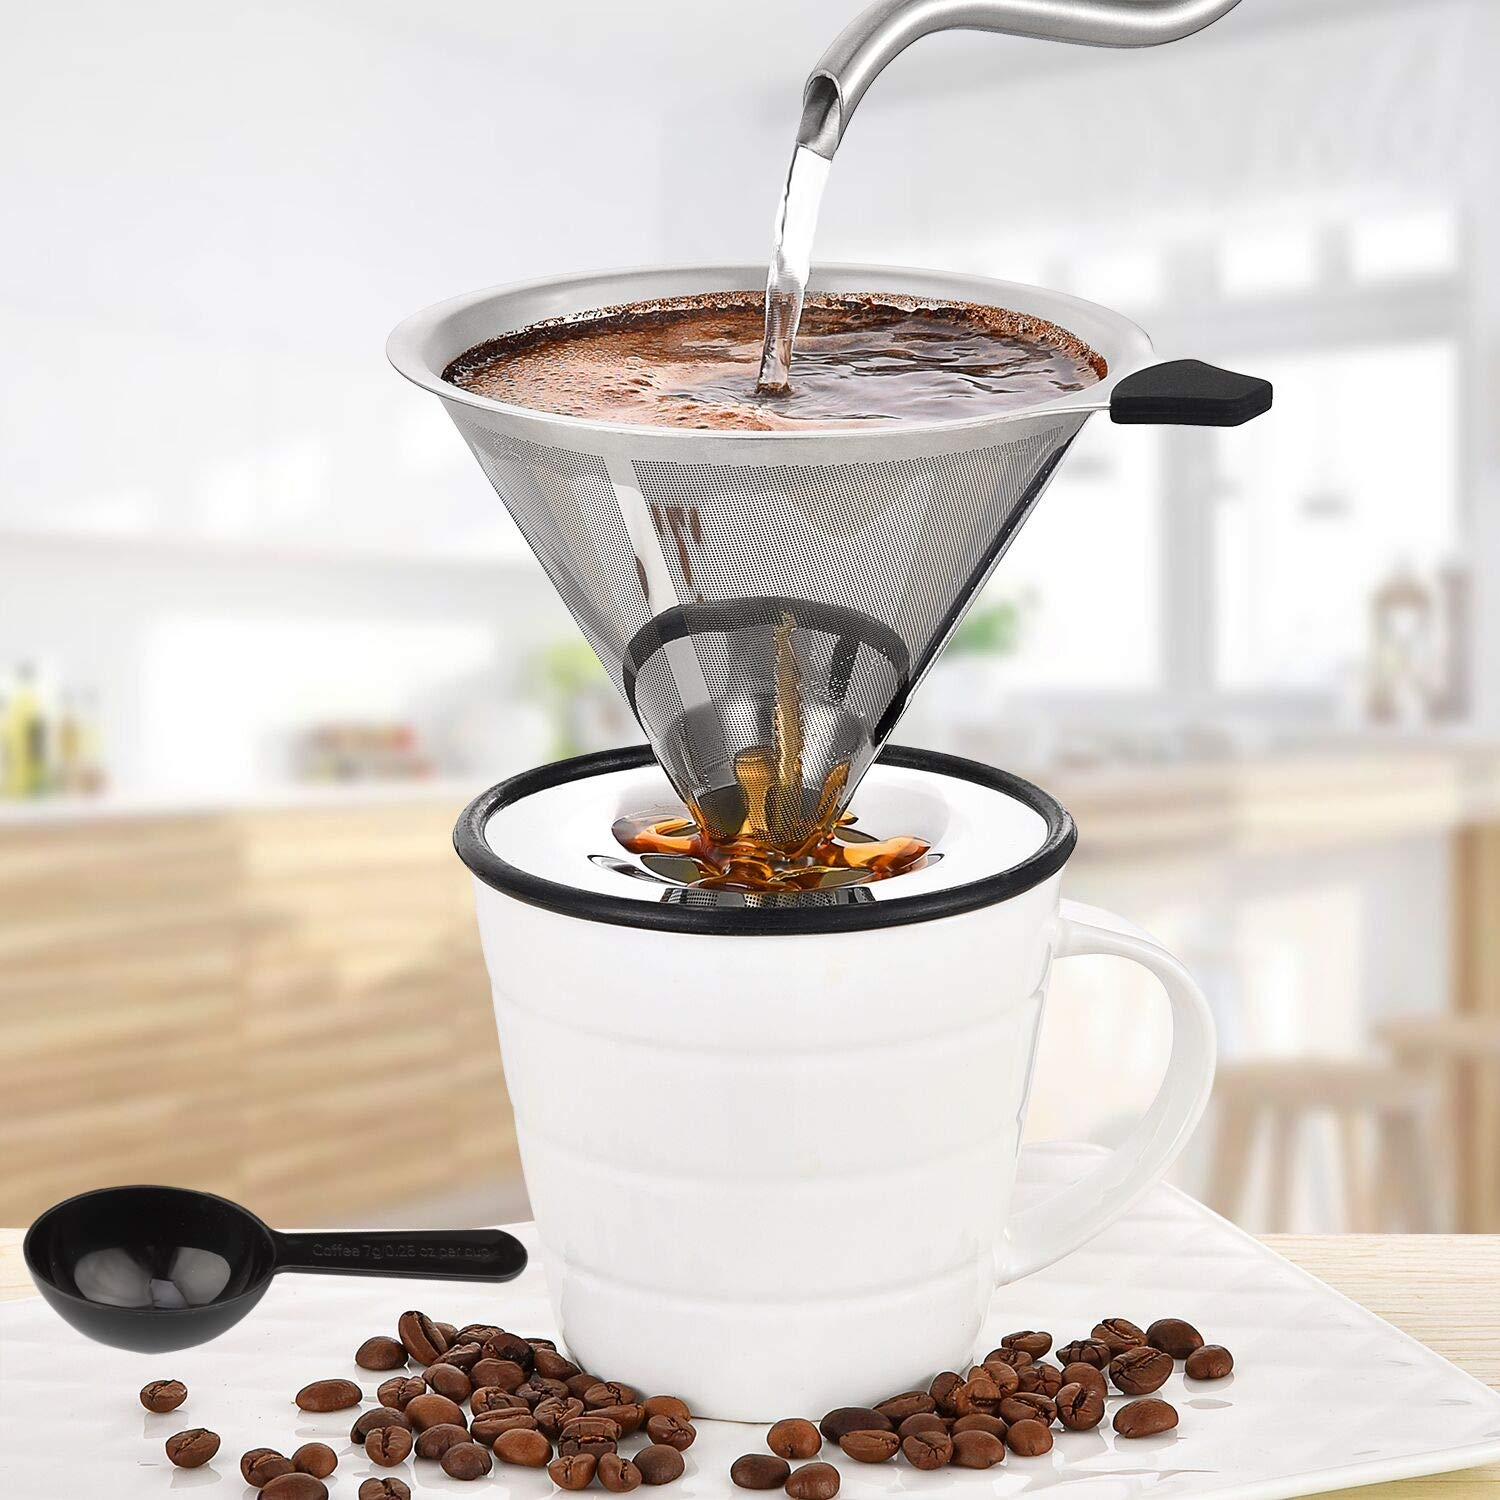 Magicaf/é Pour Over Coffee Dripper Stainless Steel Micro mesh Filter Fits Most Travel Mugs,Tea and Coffee Cups